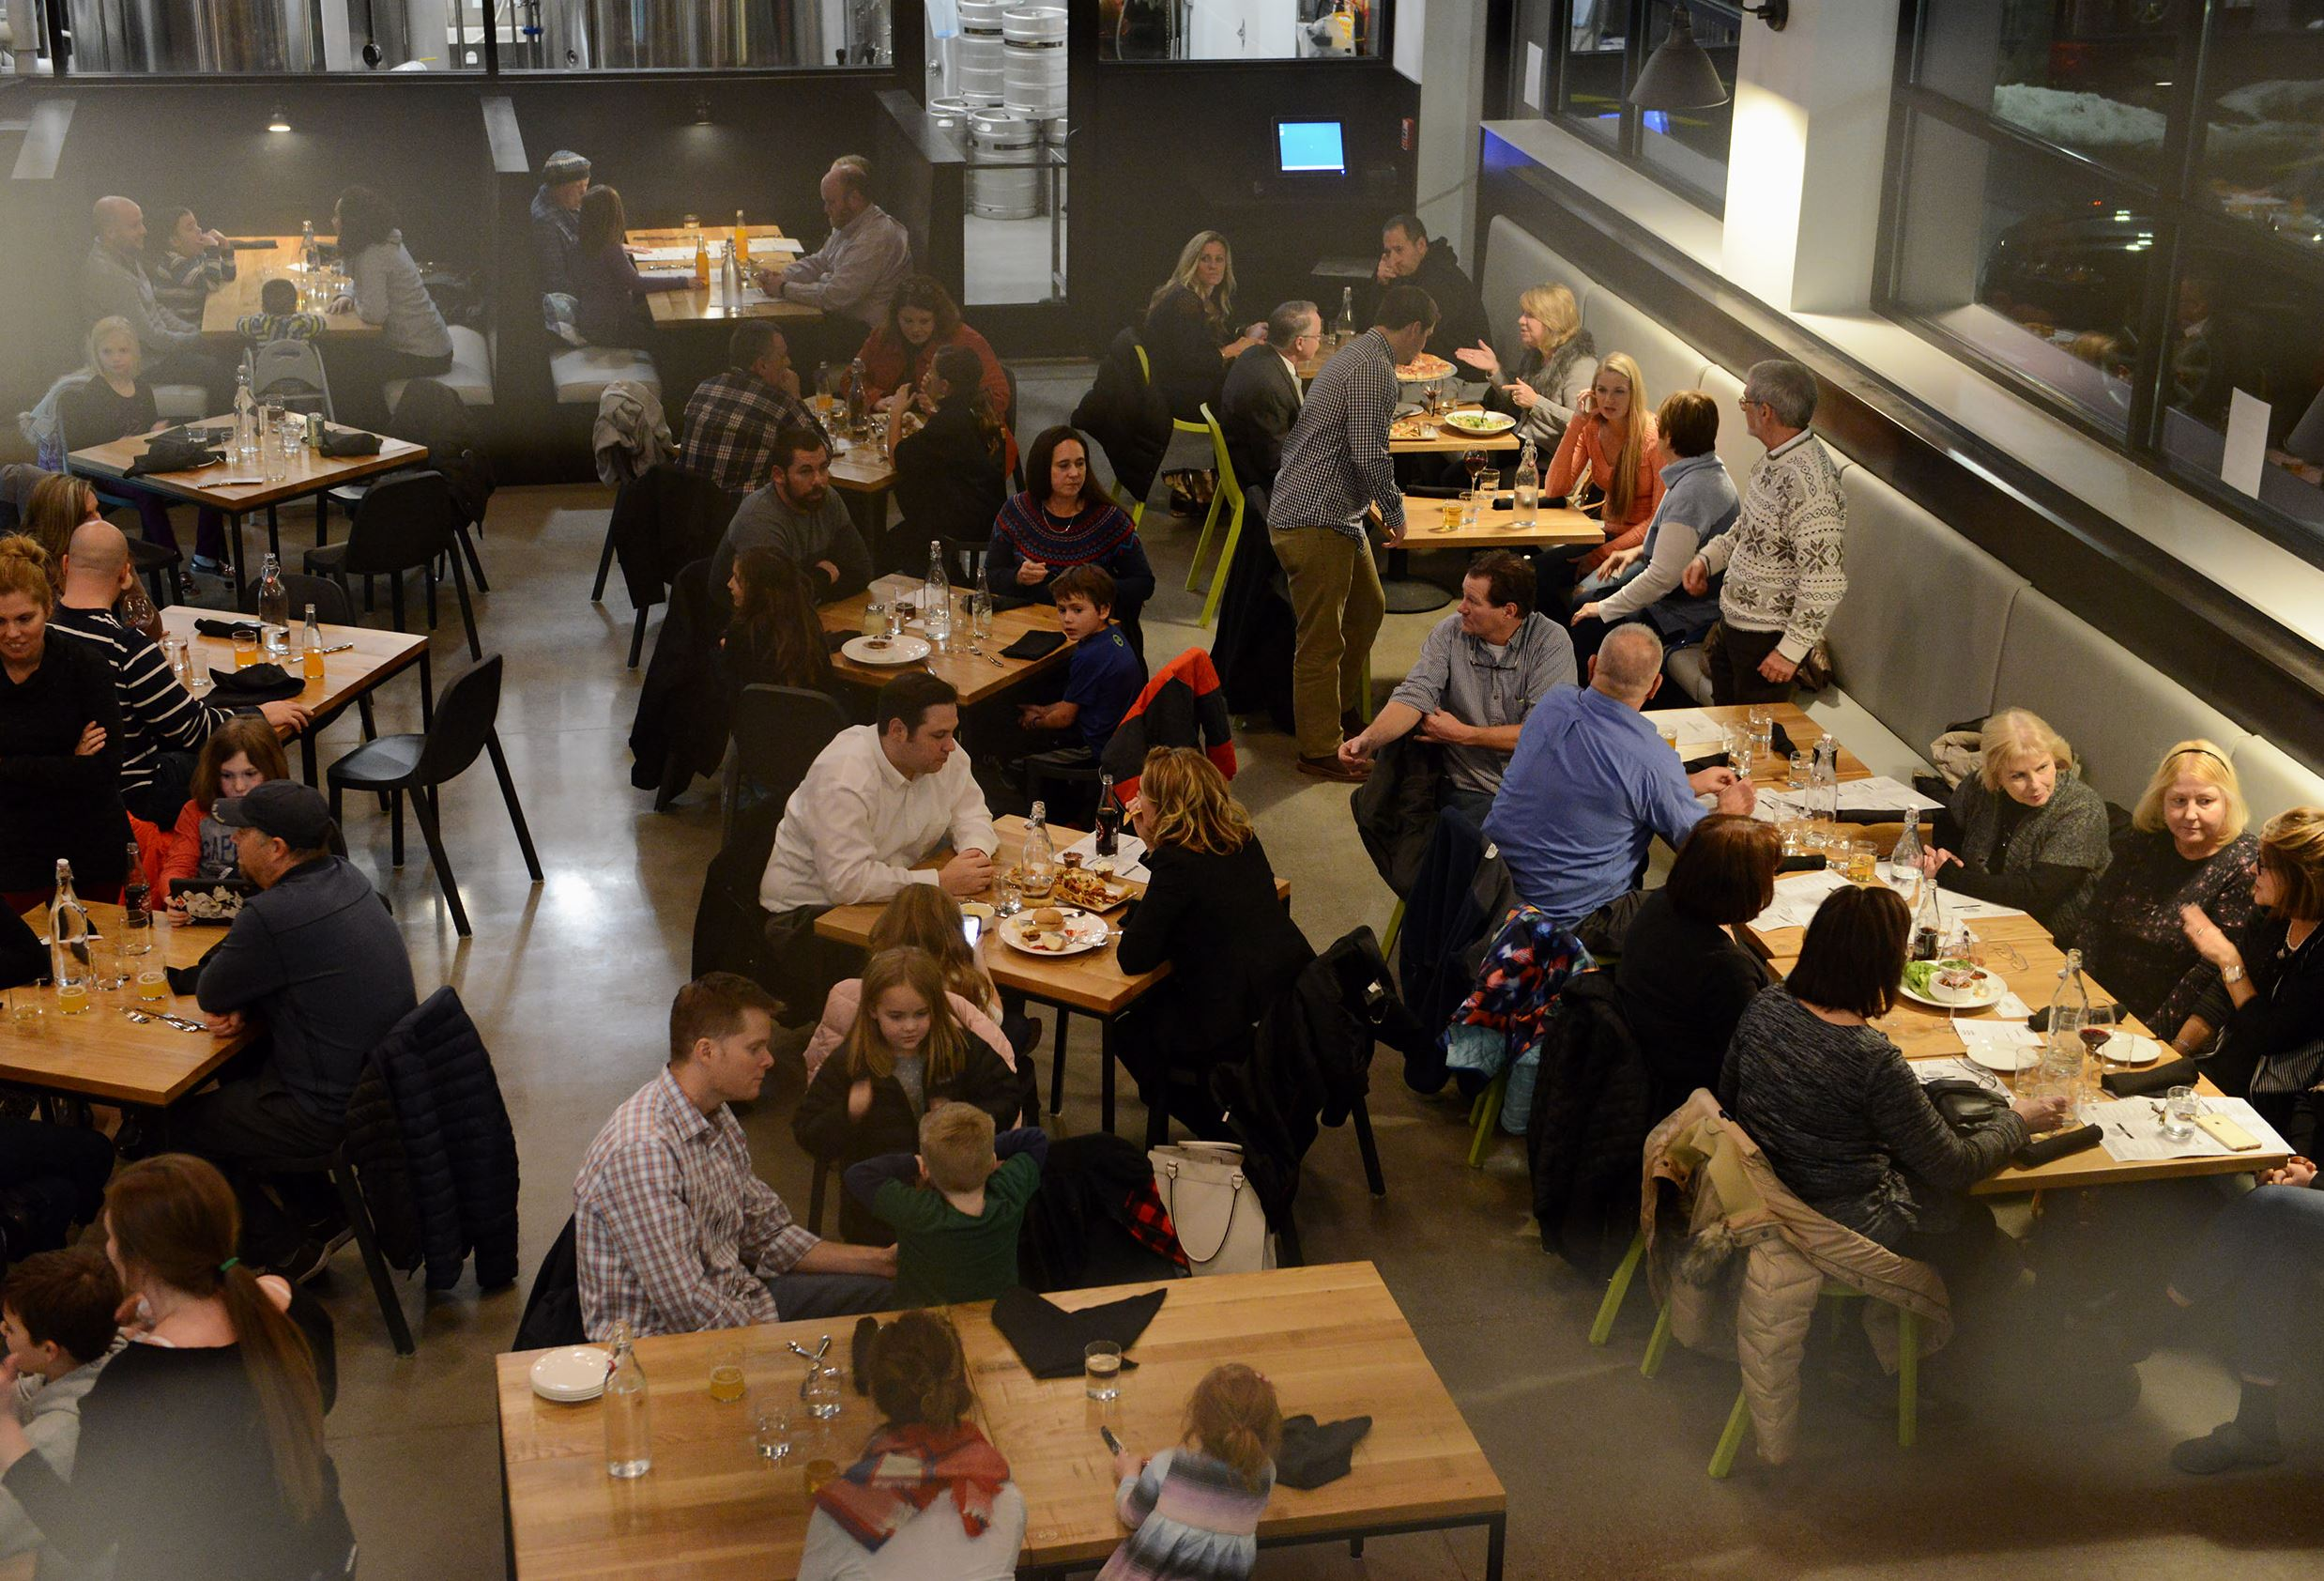 20170110rldMindful01 Mindful Brewing Company, a new brewery, restaurant and bottleshop combo in Castle Shannon.